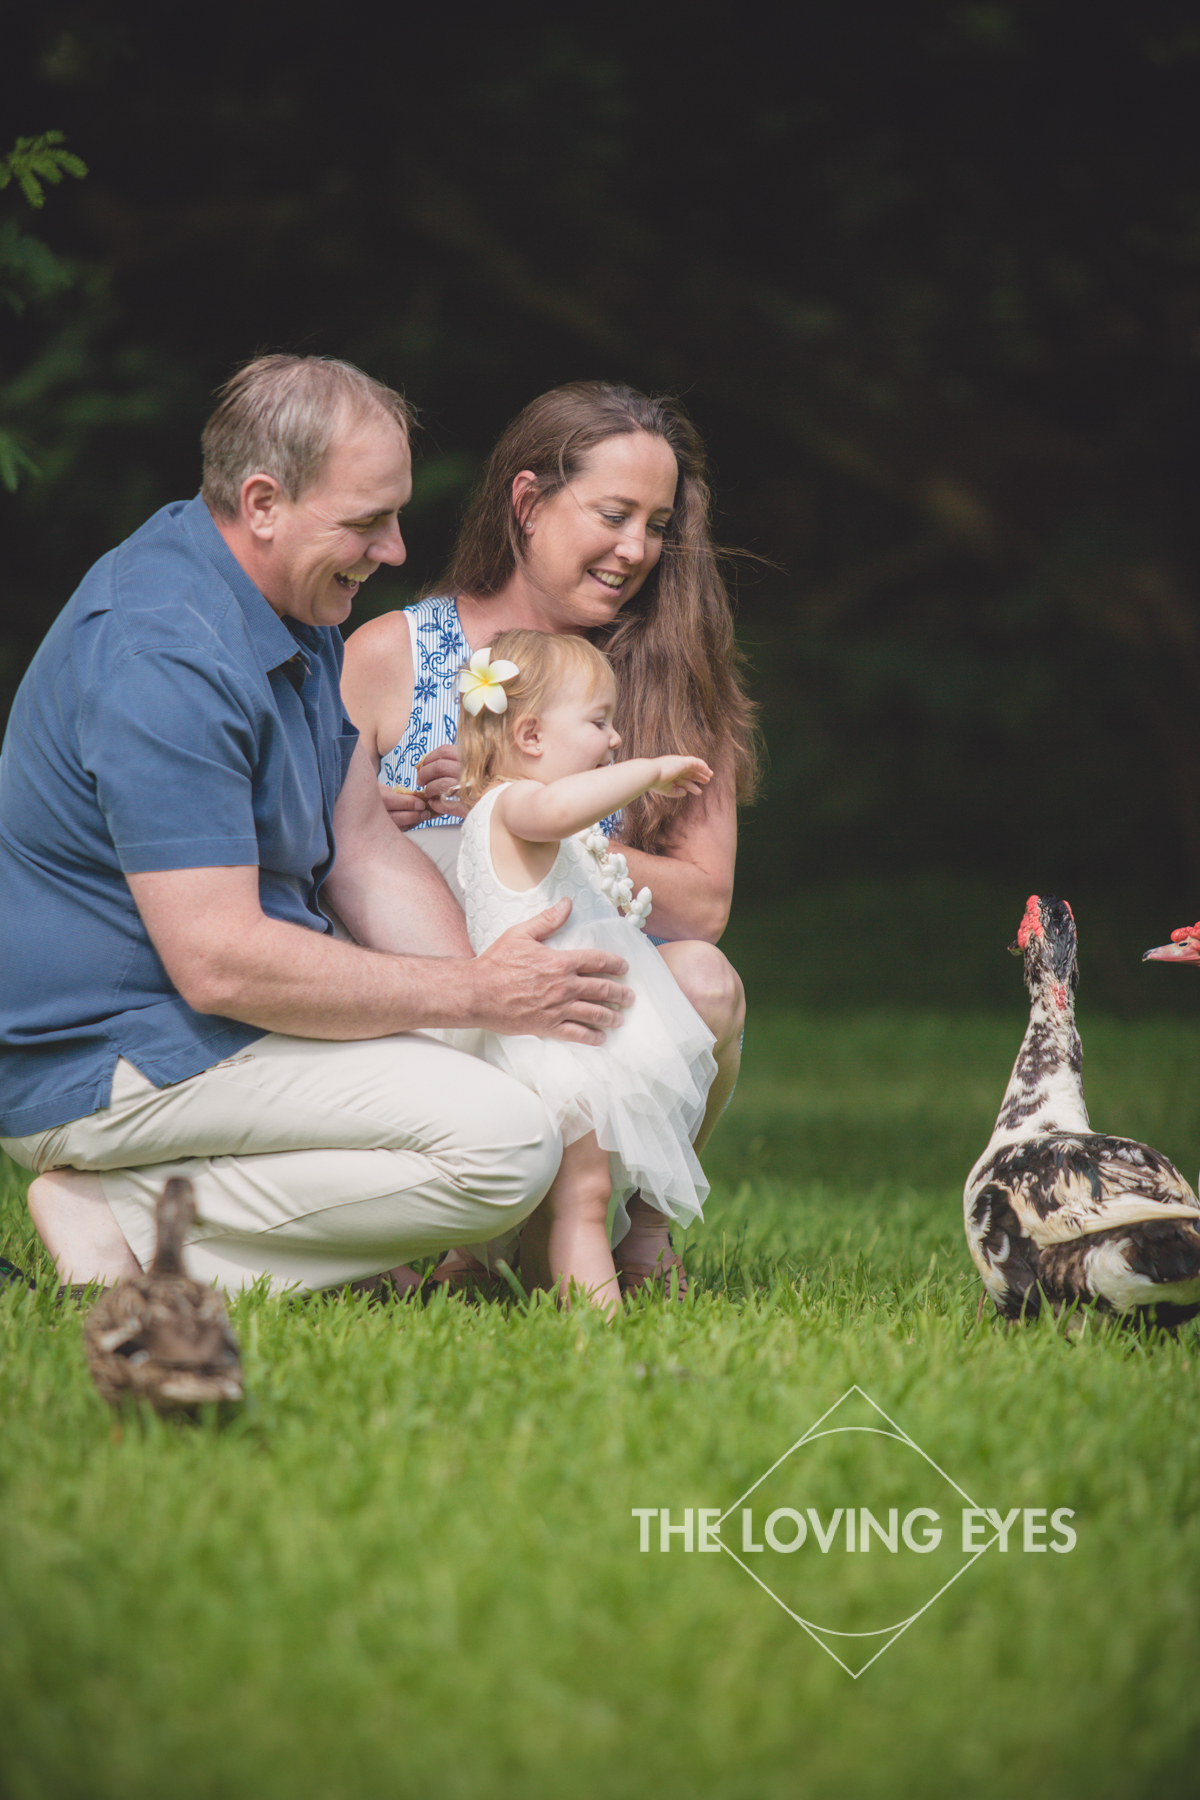 Family portrait during vacation with ducks and geese at Hoʻomaluhia Botanical Gardens